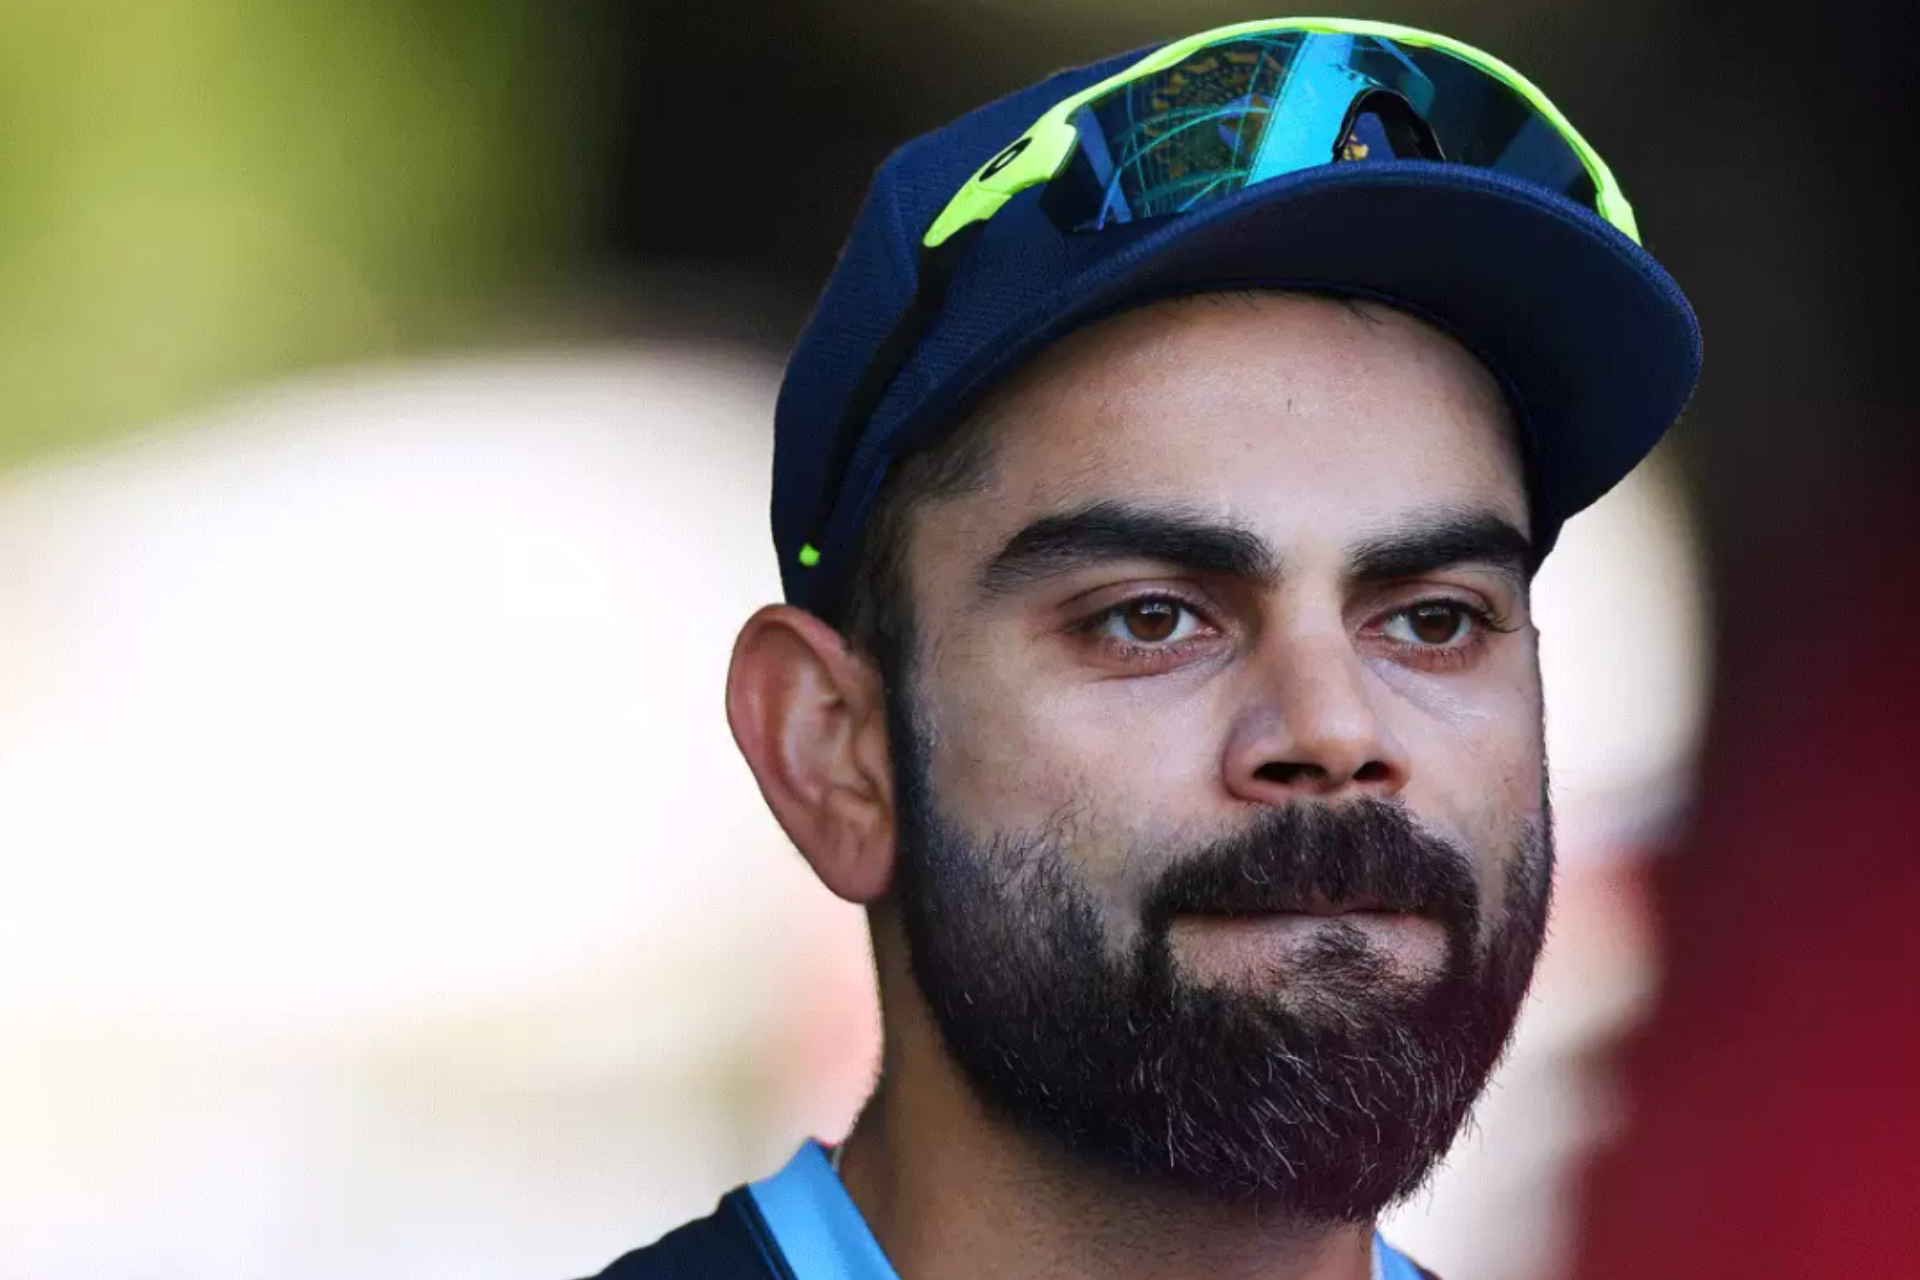 Virat Kohli Opening Up About His Mental Health Paves The Way For Dialogue On Men's Mental Health